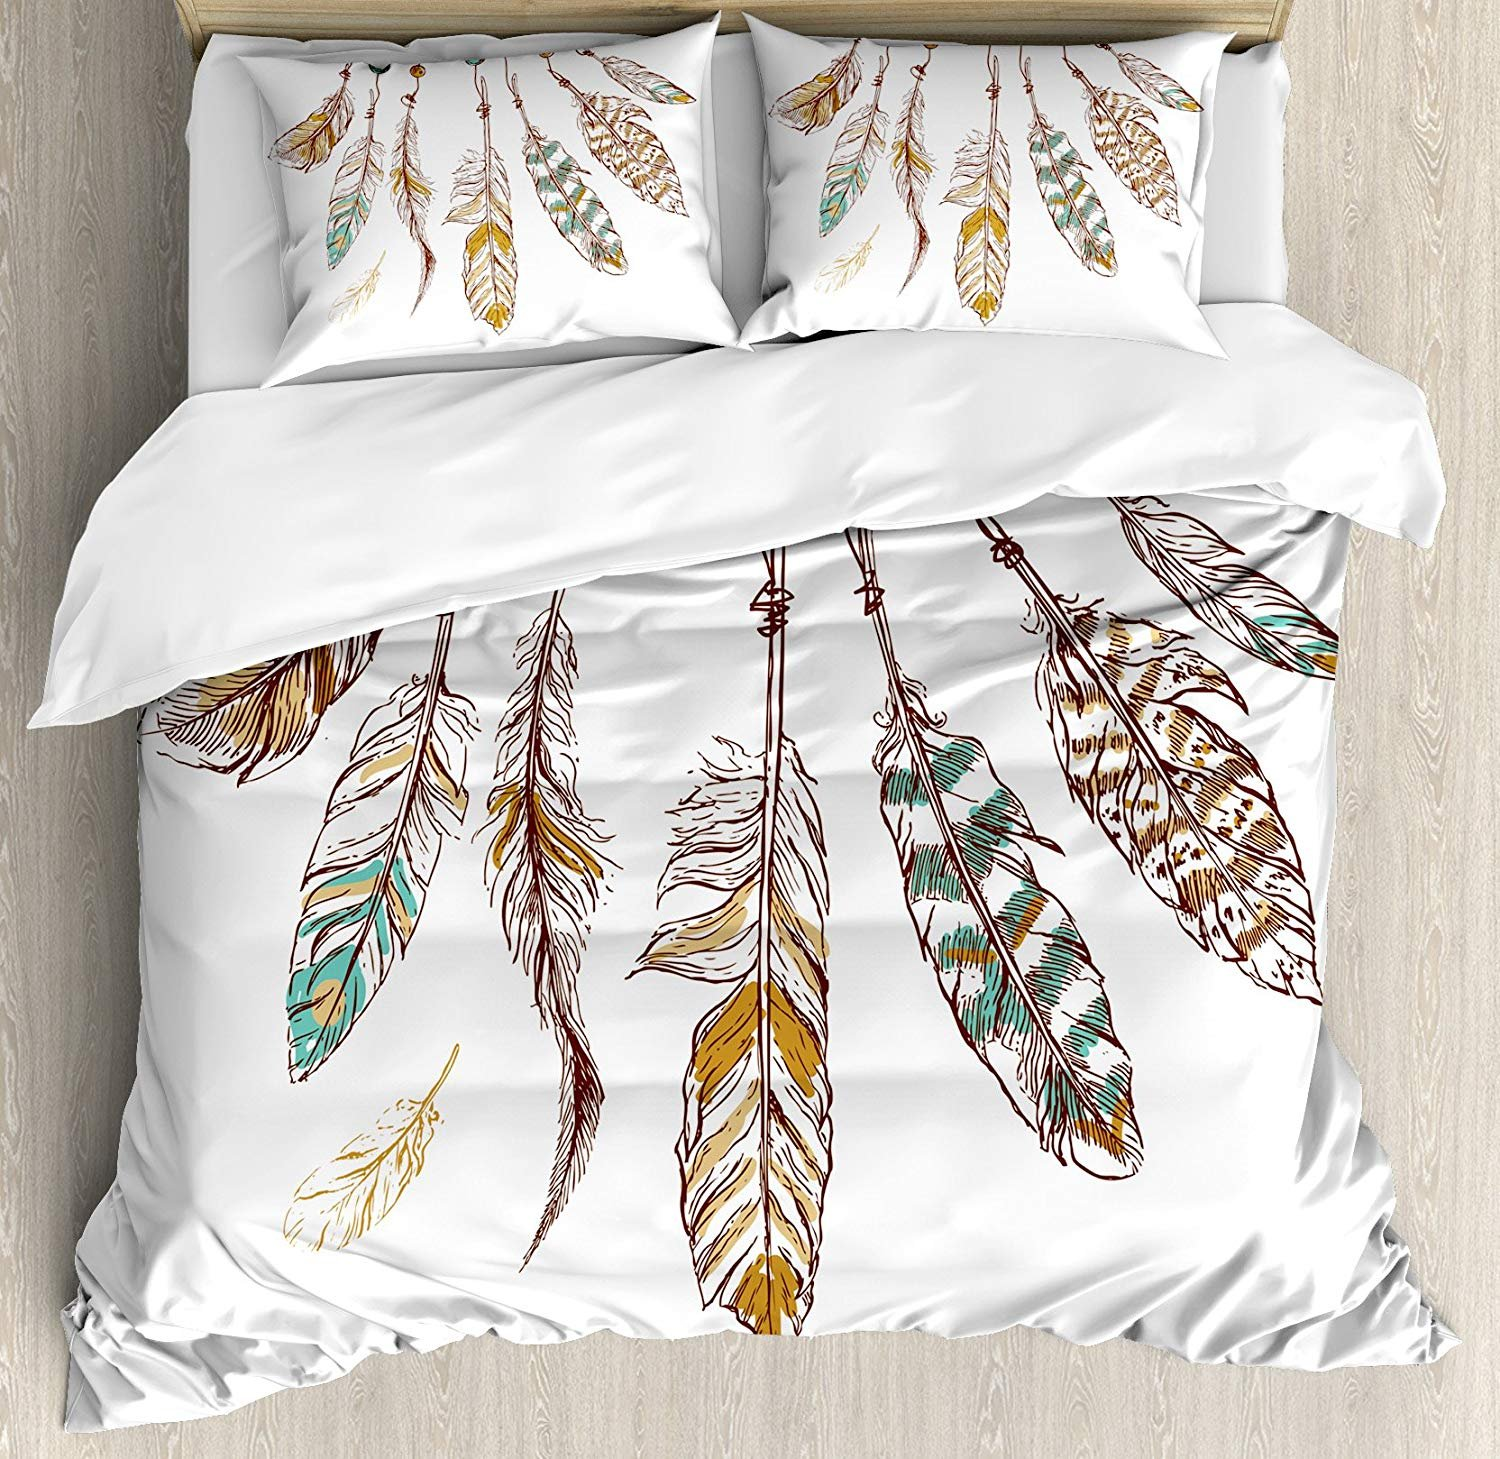 WAZZIT 4 Piece Duvet Cover Set Queen Hippie Authentic Graphic of Eastern Old Hippie Spiritual with Mysticism Icons Image Print Print Bedding Set with Zipper Closure Matching 2 Pillow Shams by WAZZIT